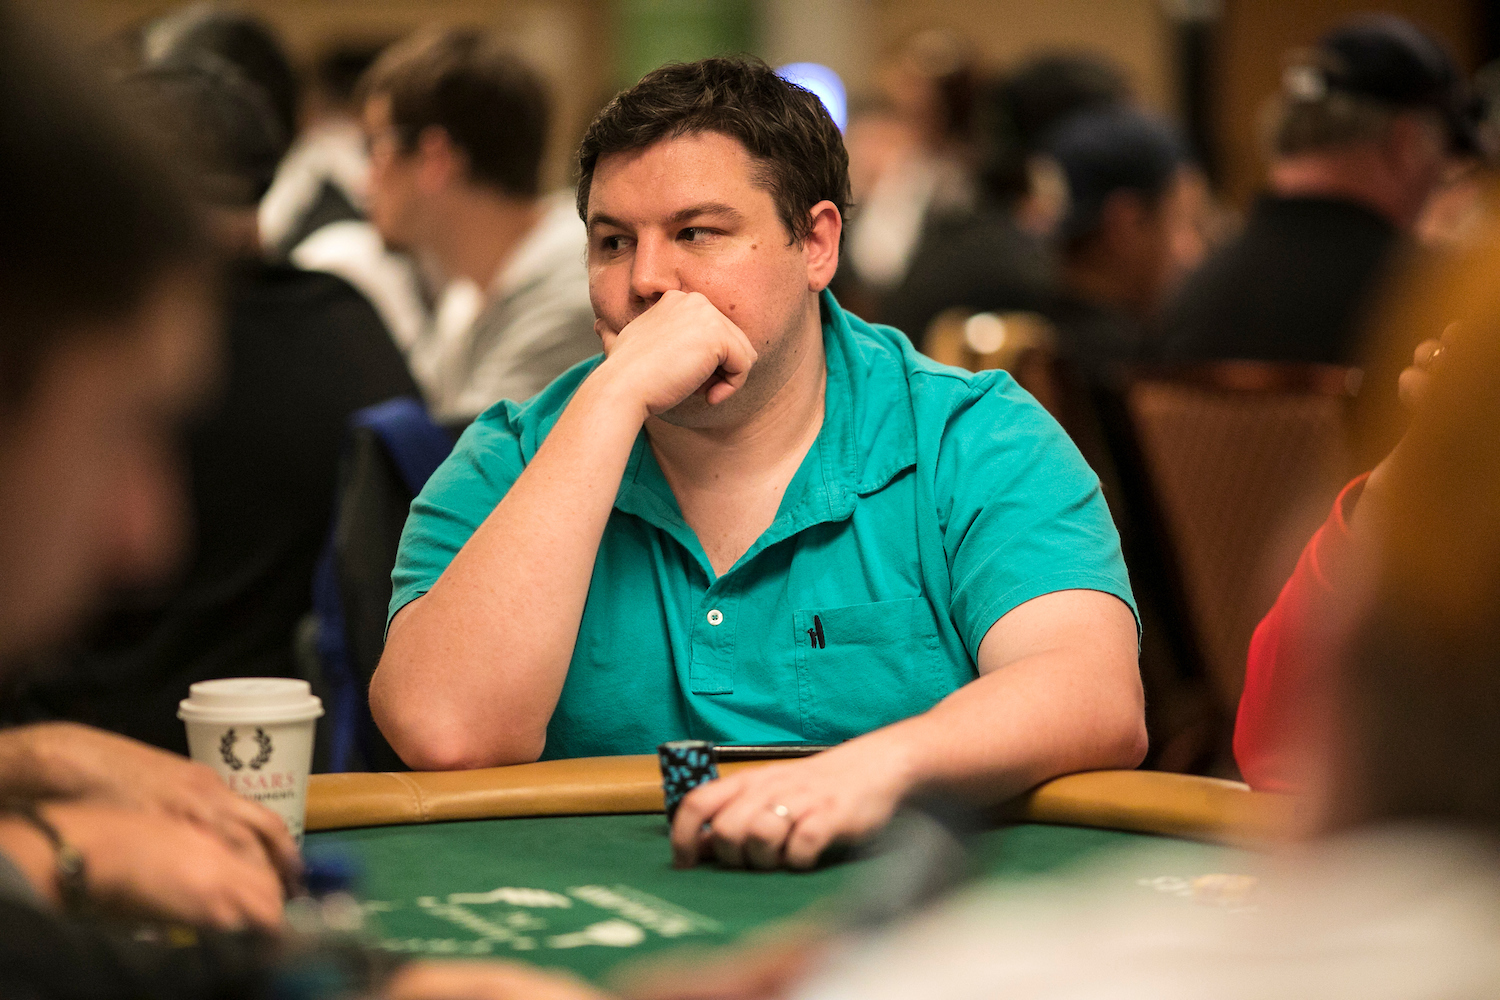 WCOOP 2019: All the news from Day 3 - Pokerstars Blog